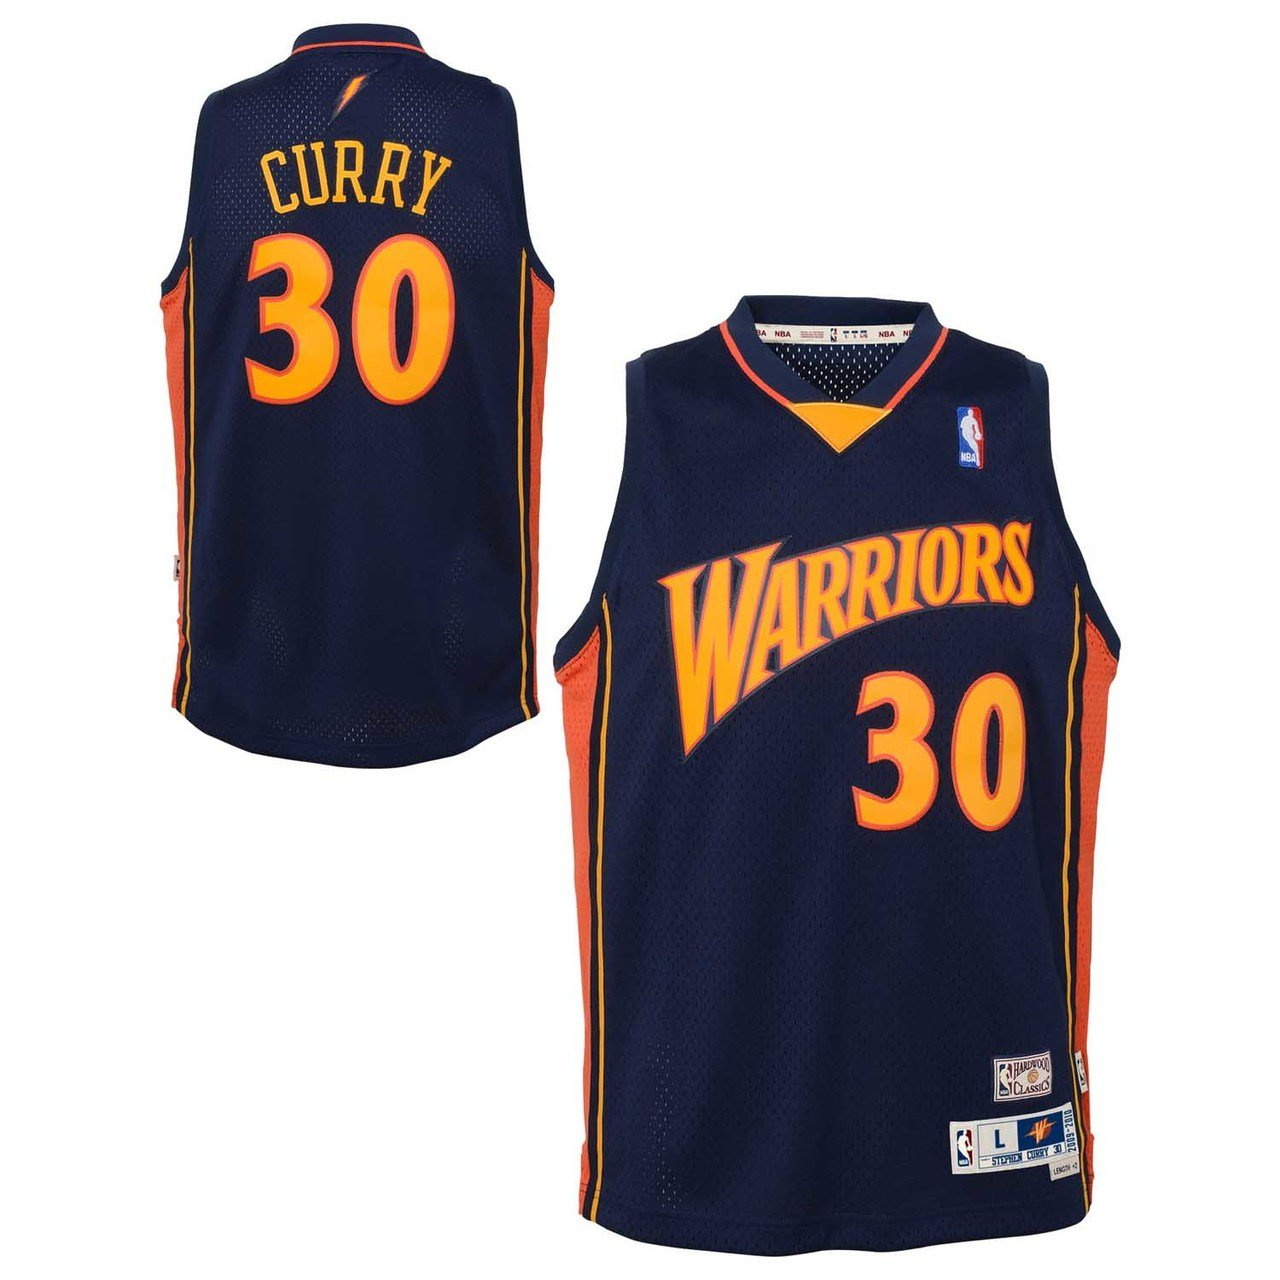 45229c5050bb Amazon.com   Outerstuff Stephen Curry Golden State Warriors NBA Youth  Throwback 2009-10 Swingman Jersey   Sports   Outdoors